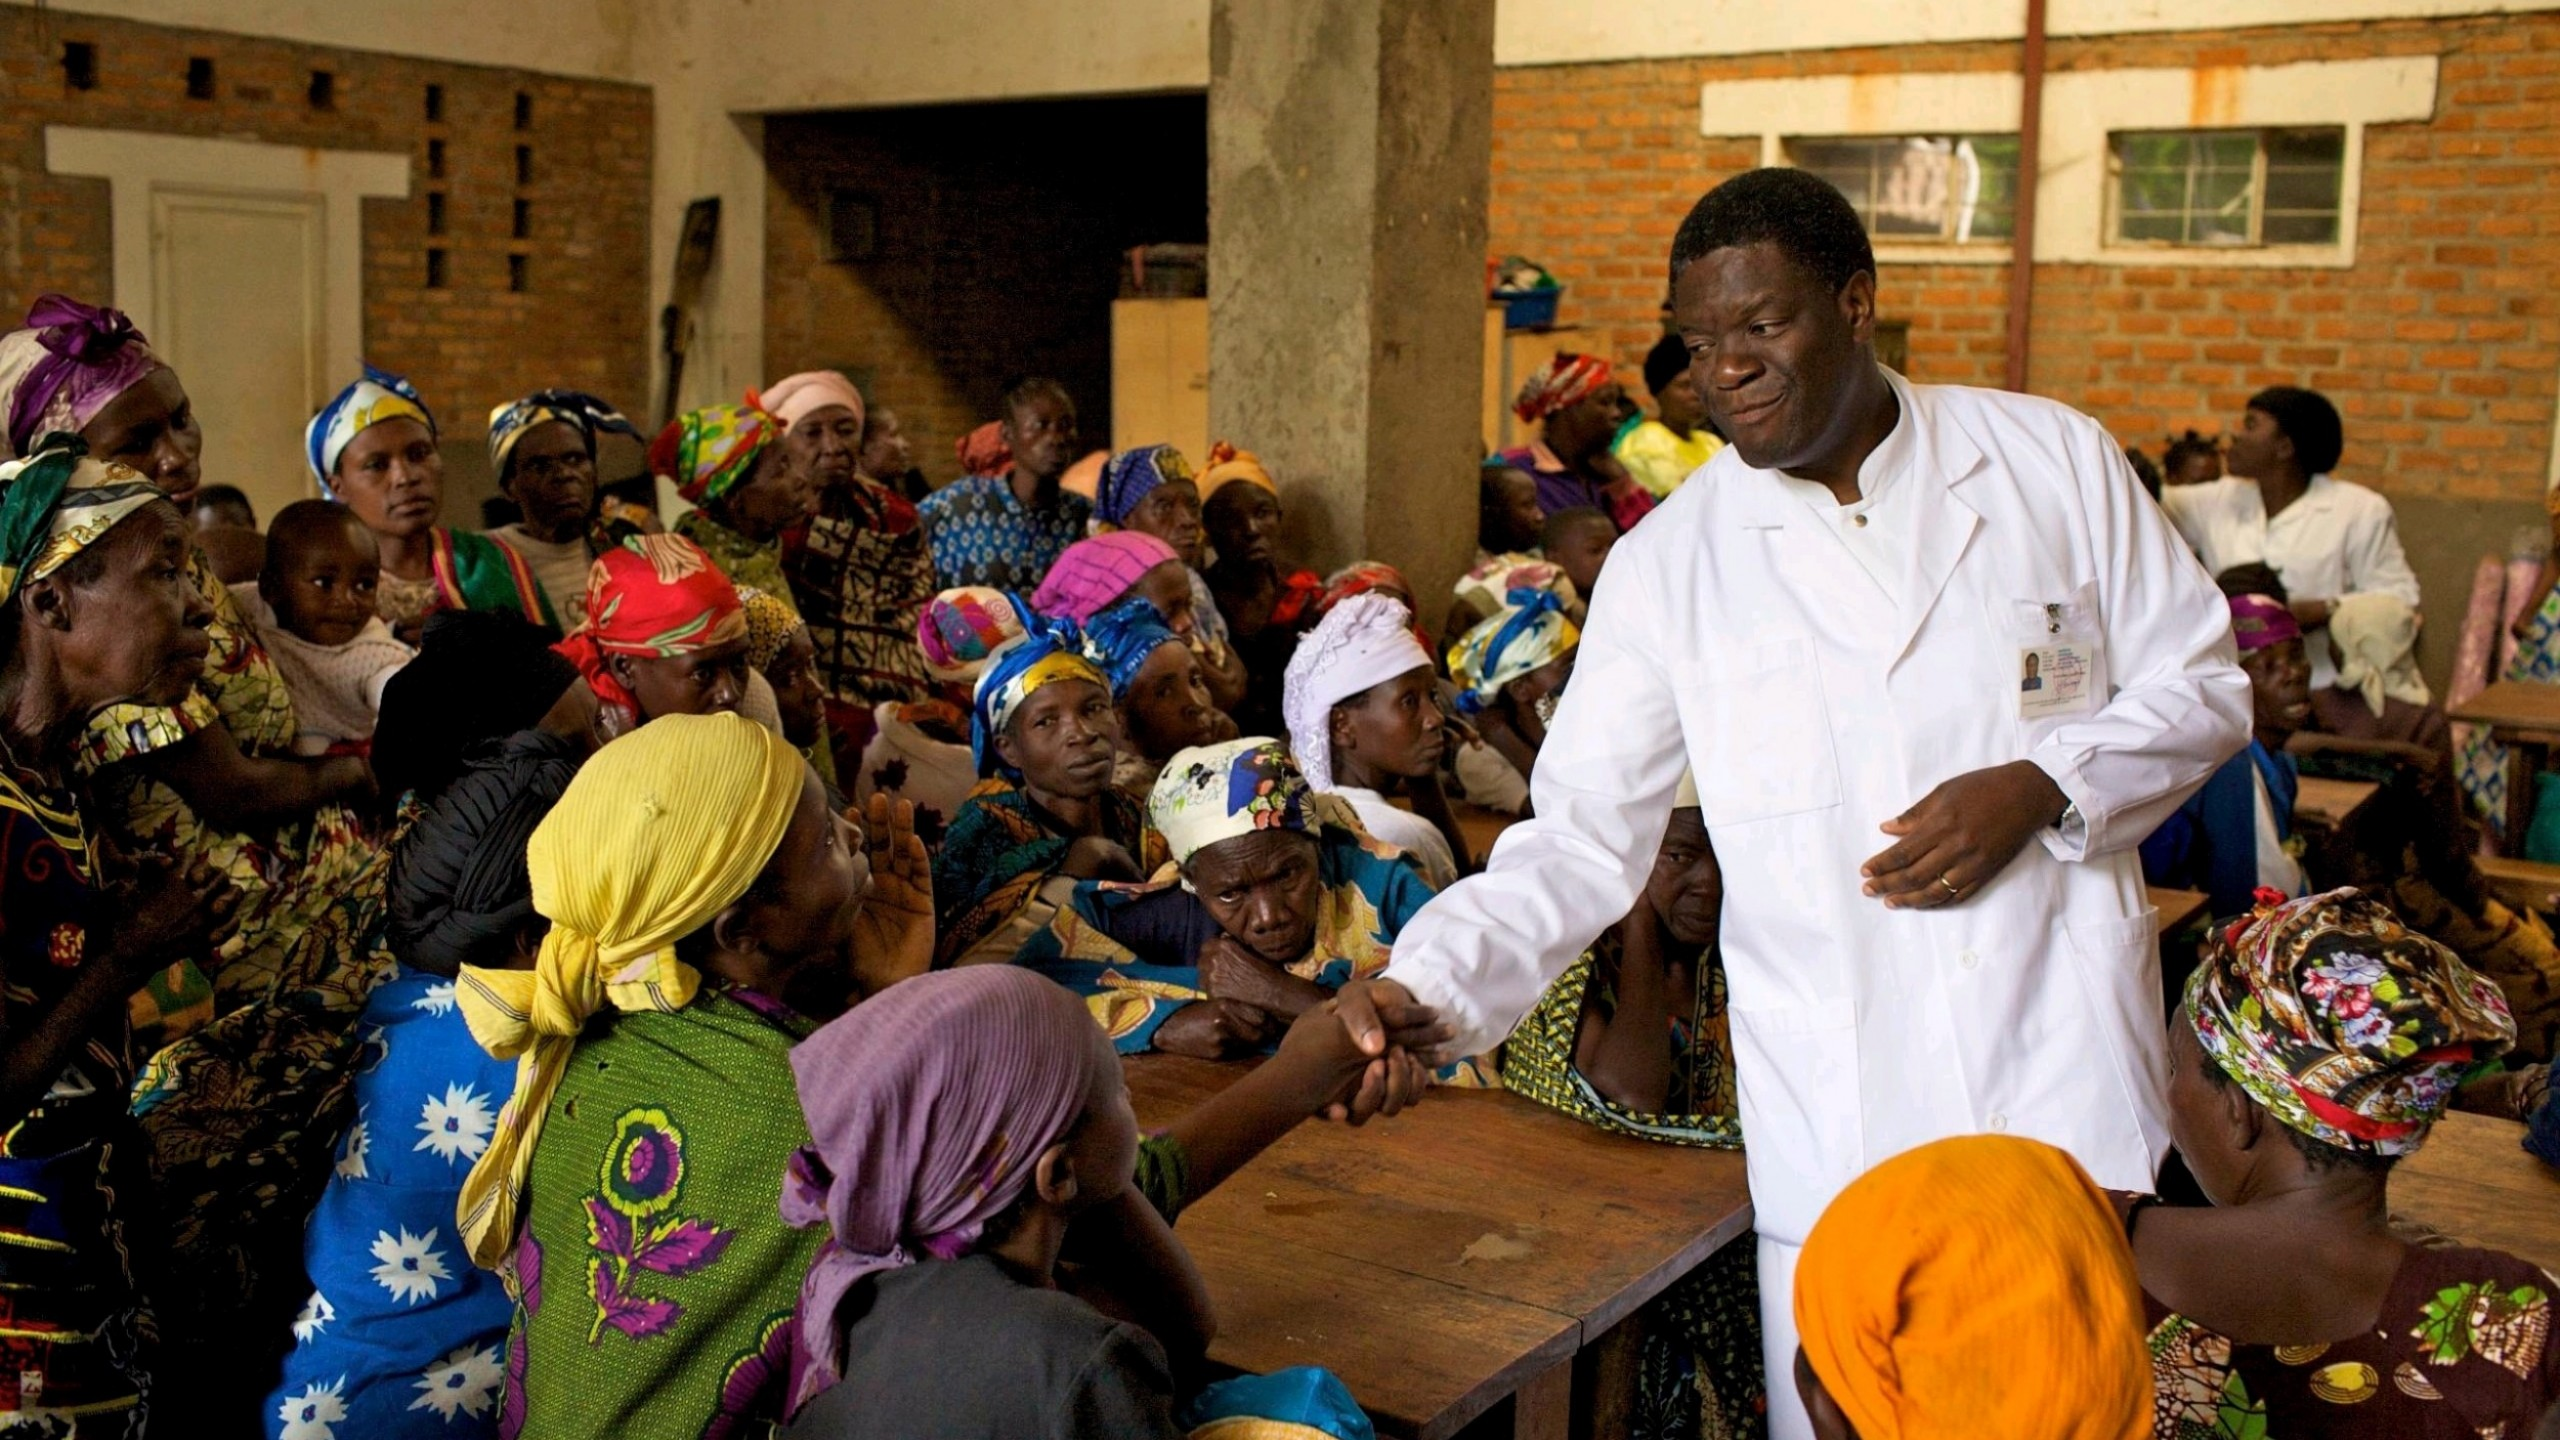 64-year-old gynaecologist, Denis Mukwege, is helping sexually abused victims in Congo get surgical repairs for the horrific damage inflicted on them (Women and Girls)